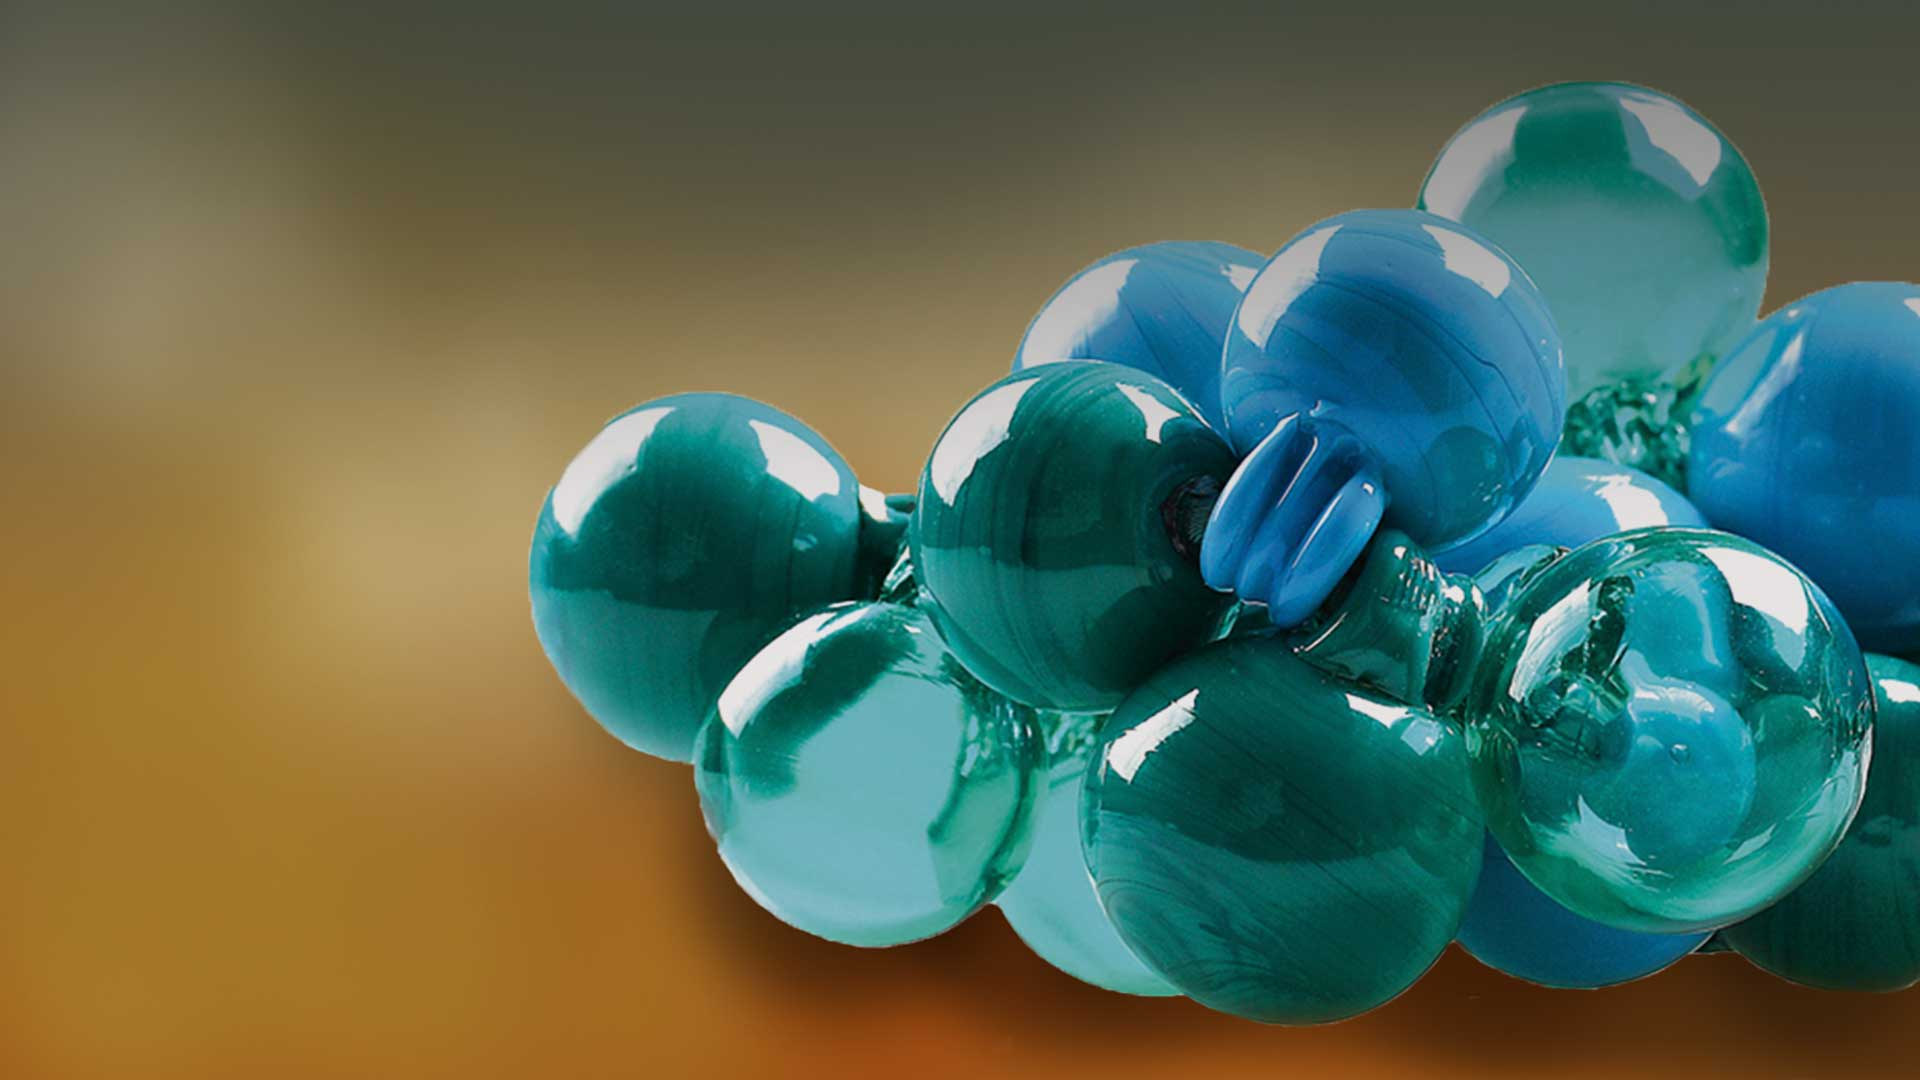 Murano Art Glass - FOR ARTISTS, COLLECTORS & DESIGNERS